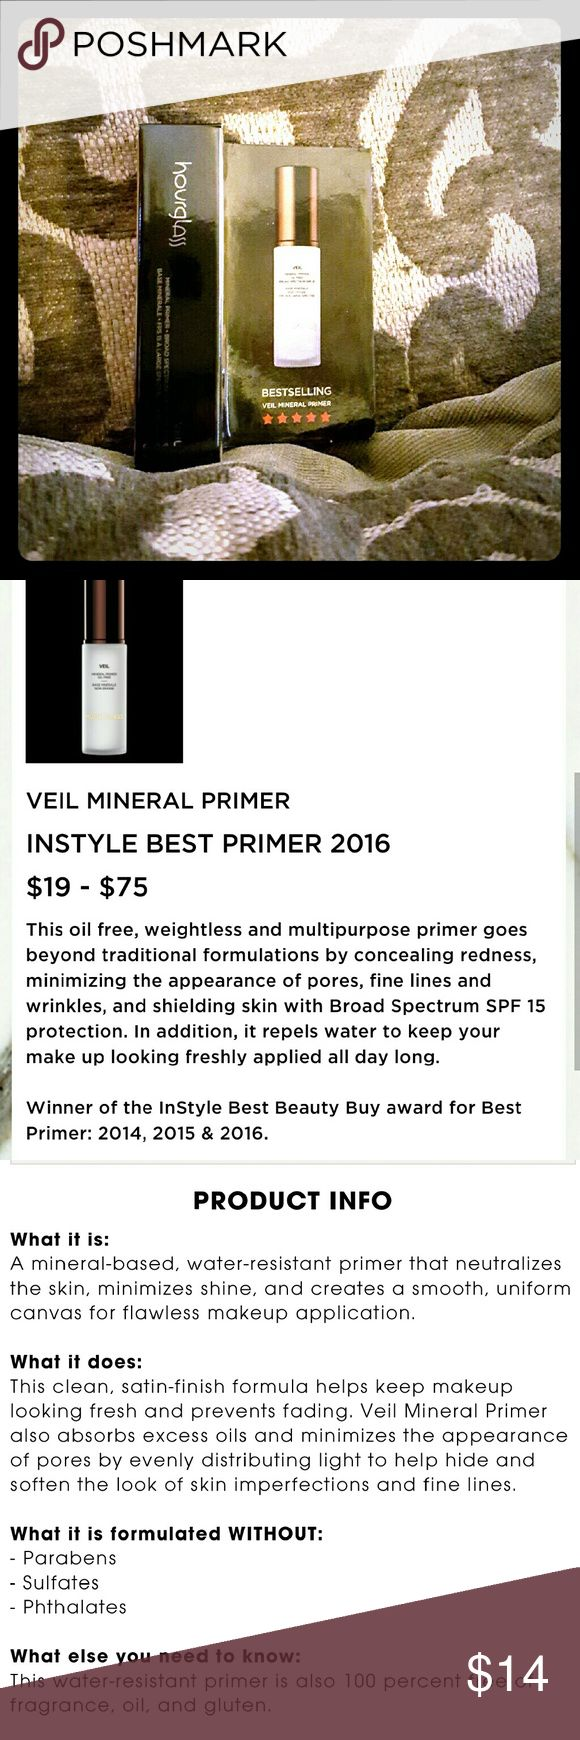 Selling this New Hourglass Travel Size Veil Mineral Primer! on Poshmark! My username is: kpotchyn. #shopmycloset #poshmark #fashion #shopping #style #forsale #hourglass #Other